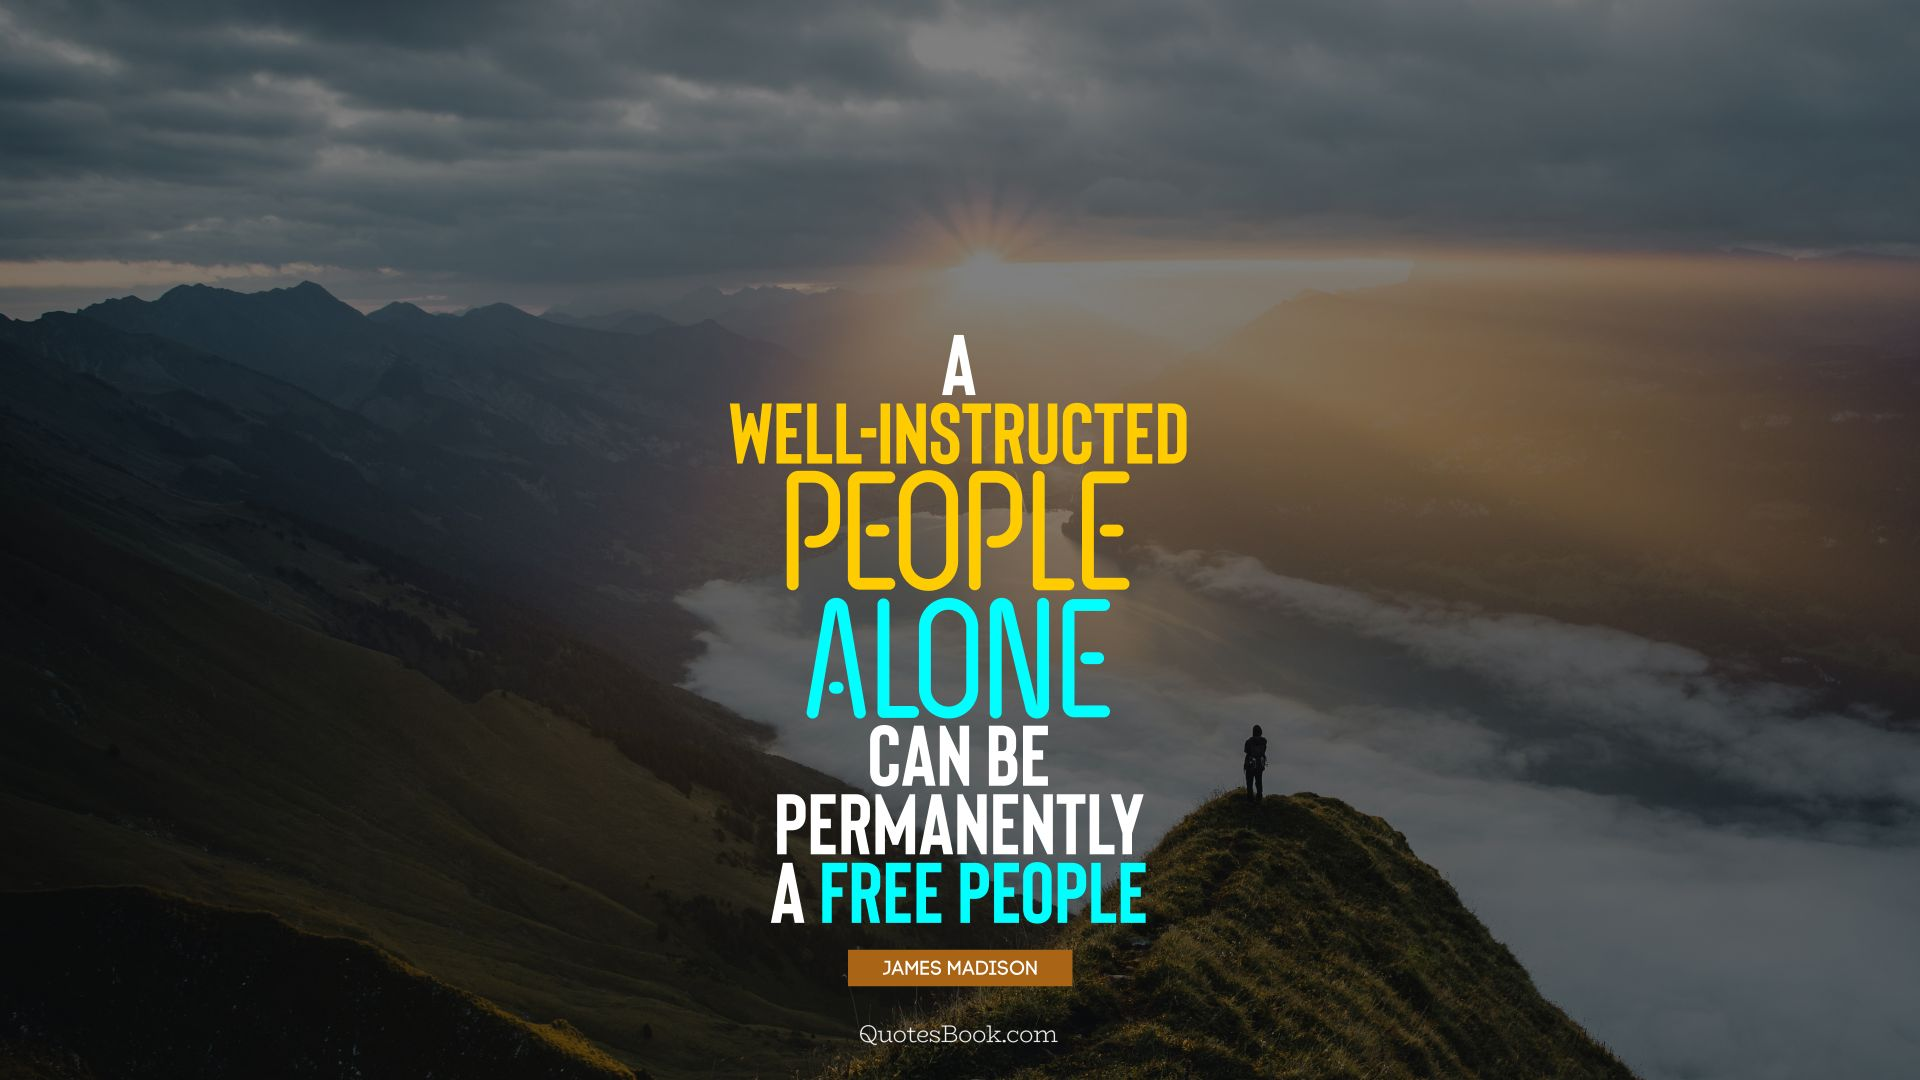 A well-instructed people alone can be permanently a free people. - Quote by James Madison